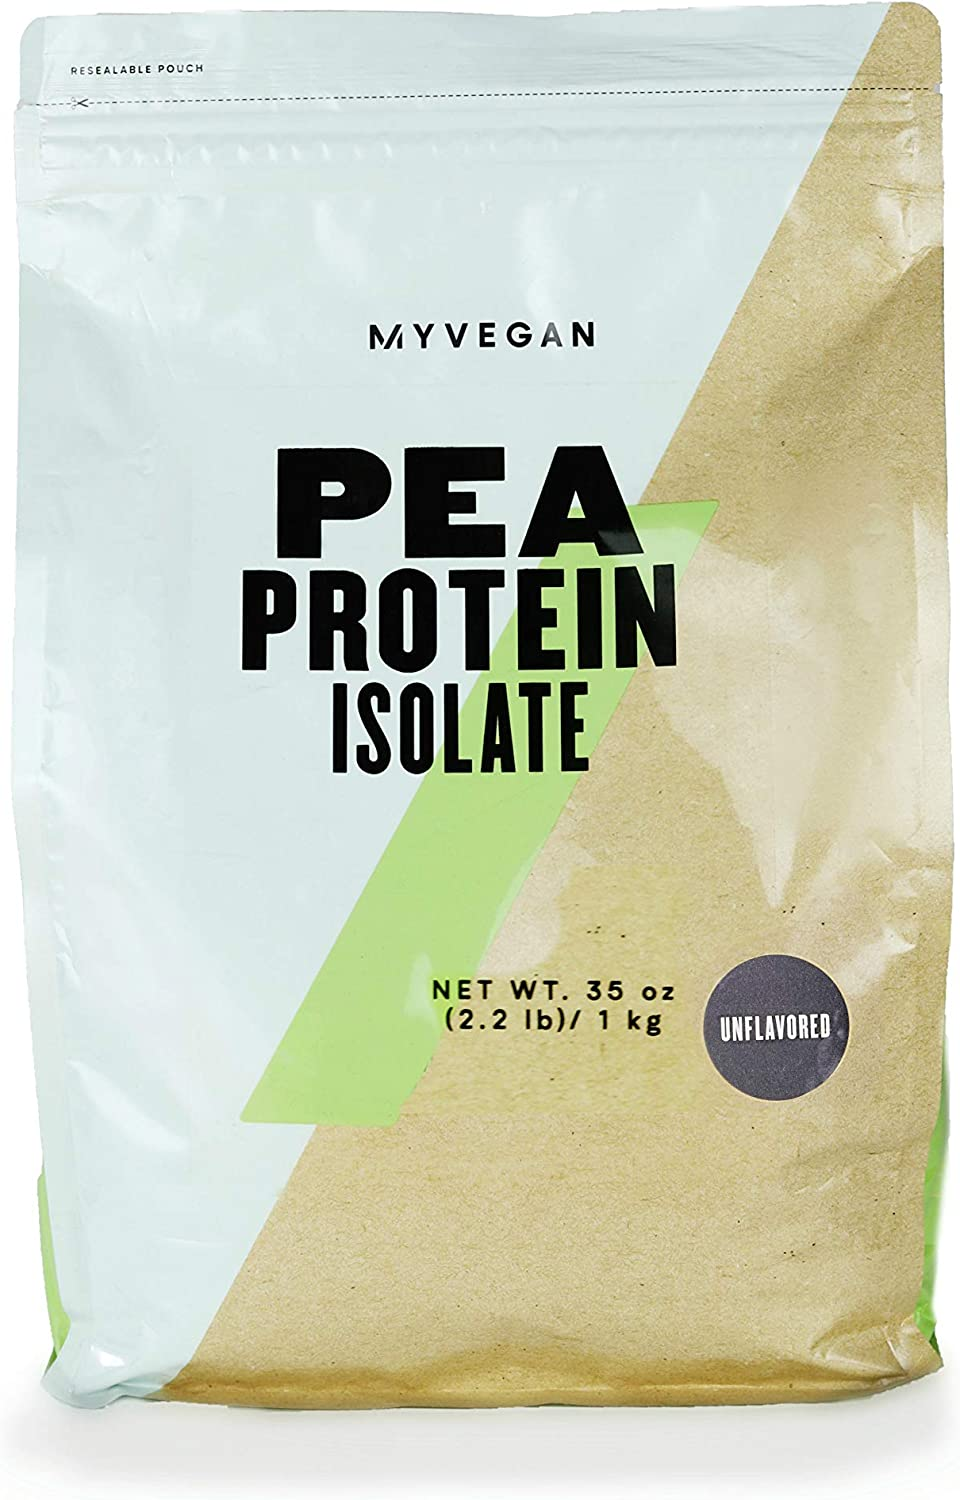 Myprotein® Quantity limited MYVEGAN Pea Protein Discount mail order Powder 2. Isolate Unflavored